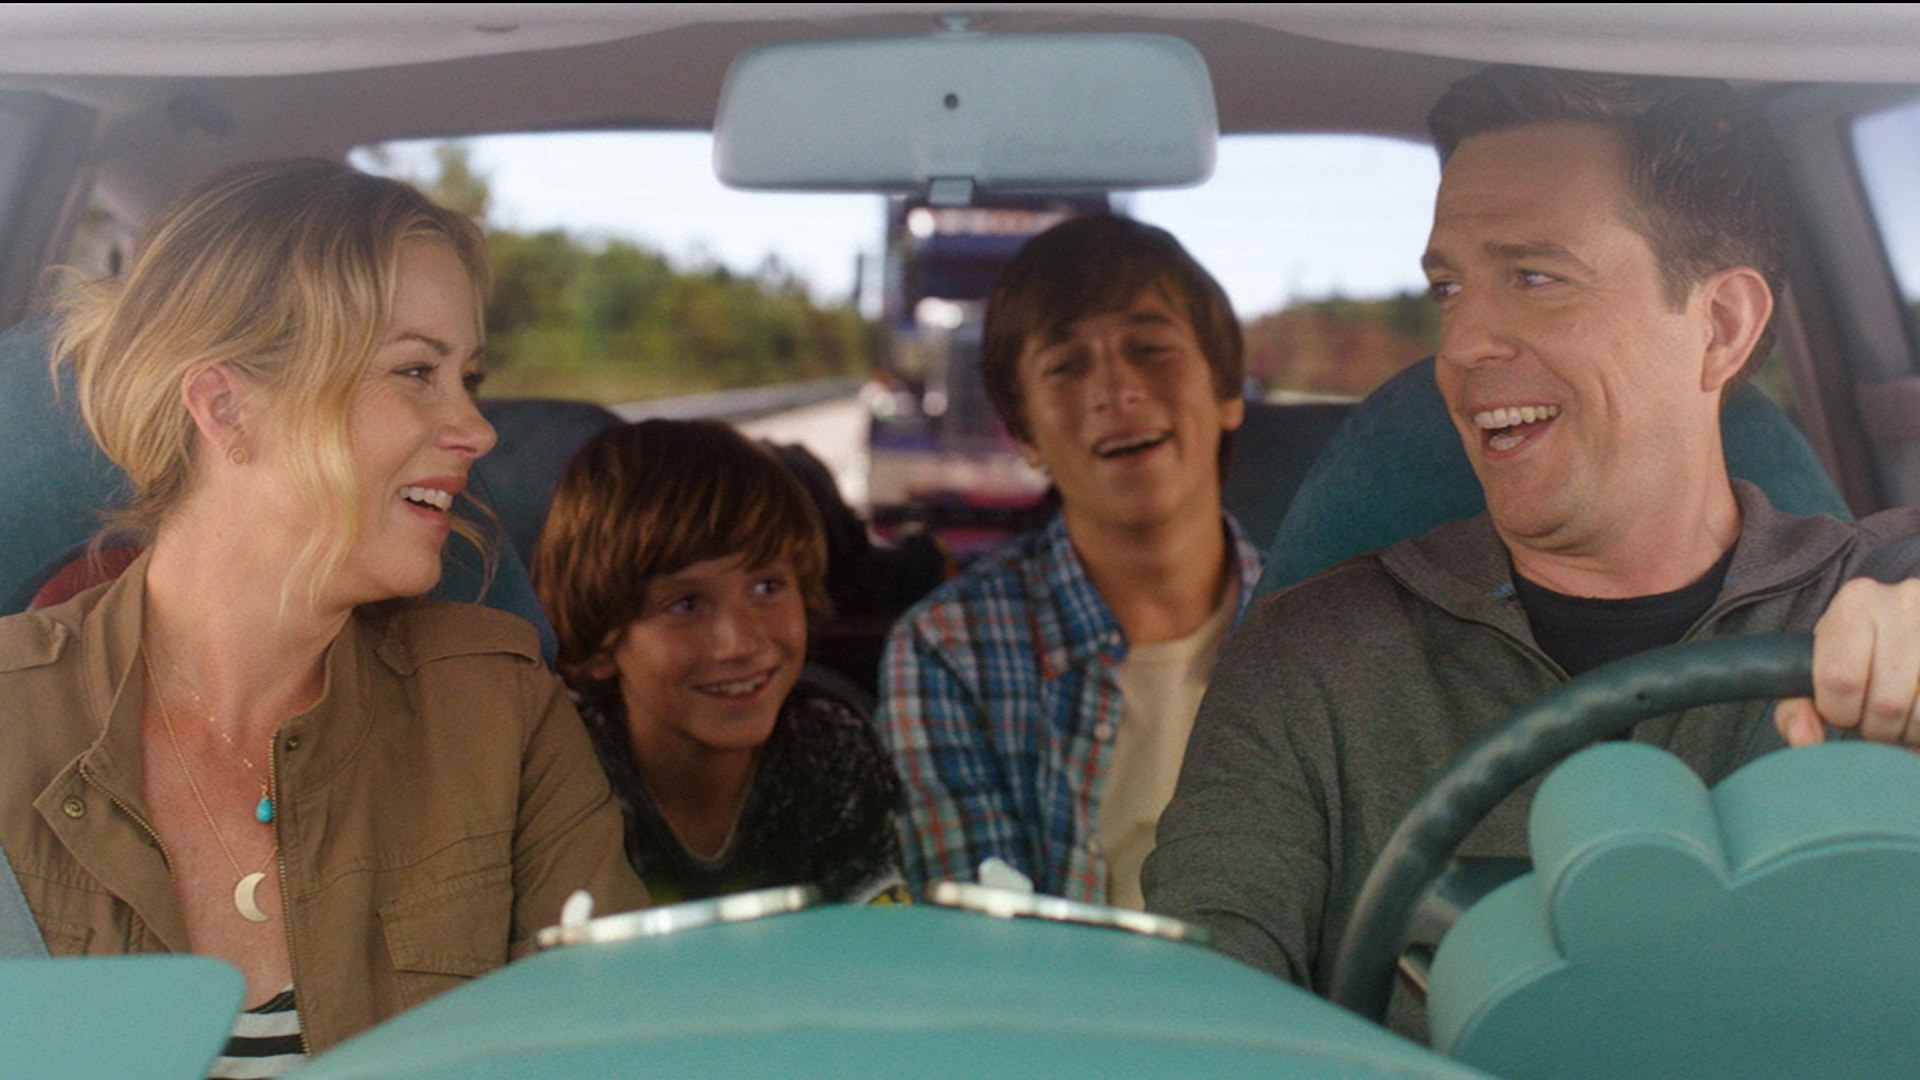 5 Lessons from the Vacation movie